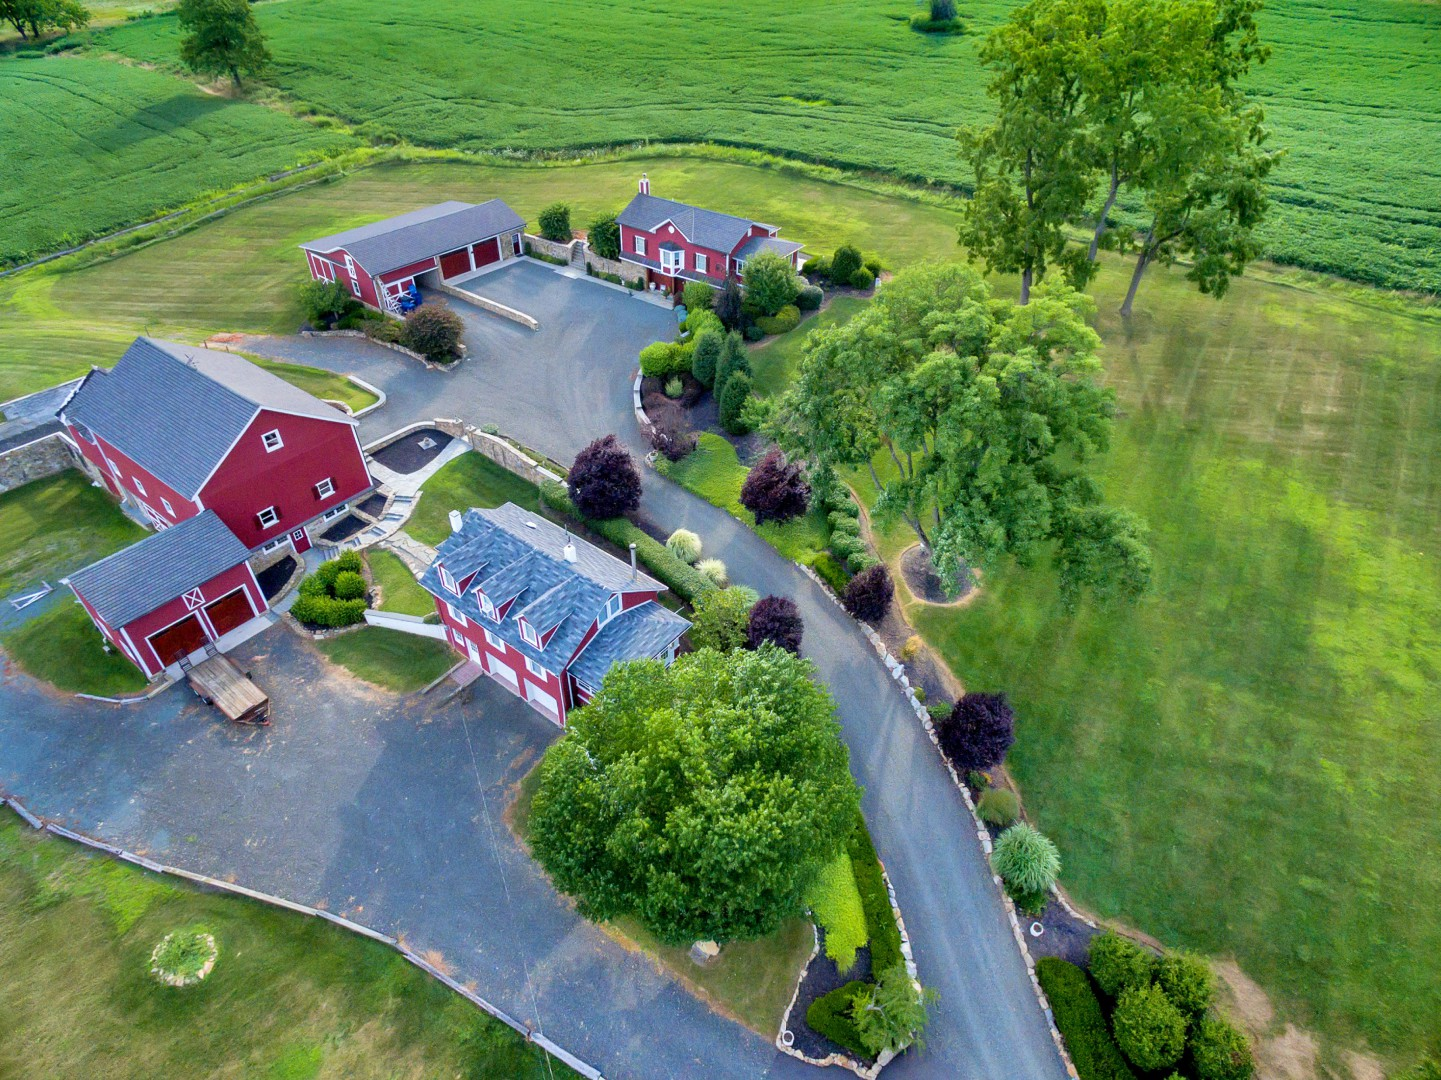 Single Family Home for Sale at Magnificently Restored Farm 109 Old Turnpike Road Tewksbury Township, New Jersey 07830 United States